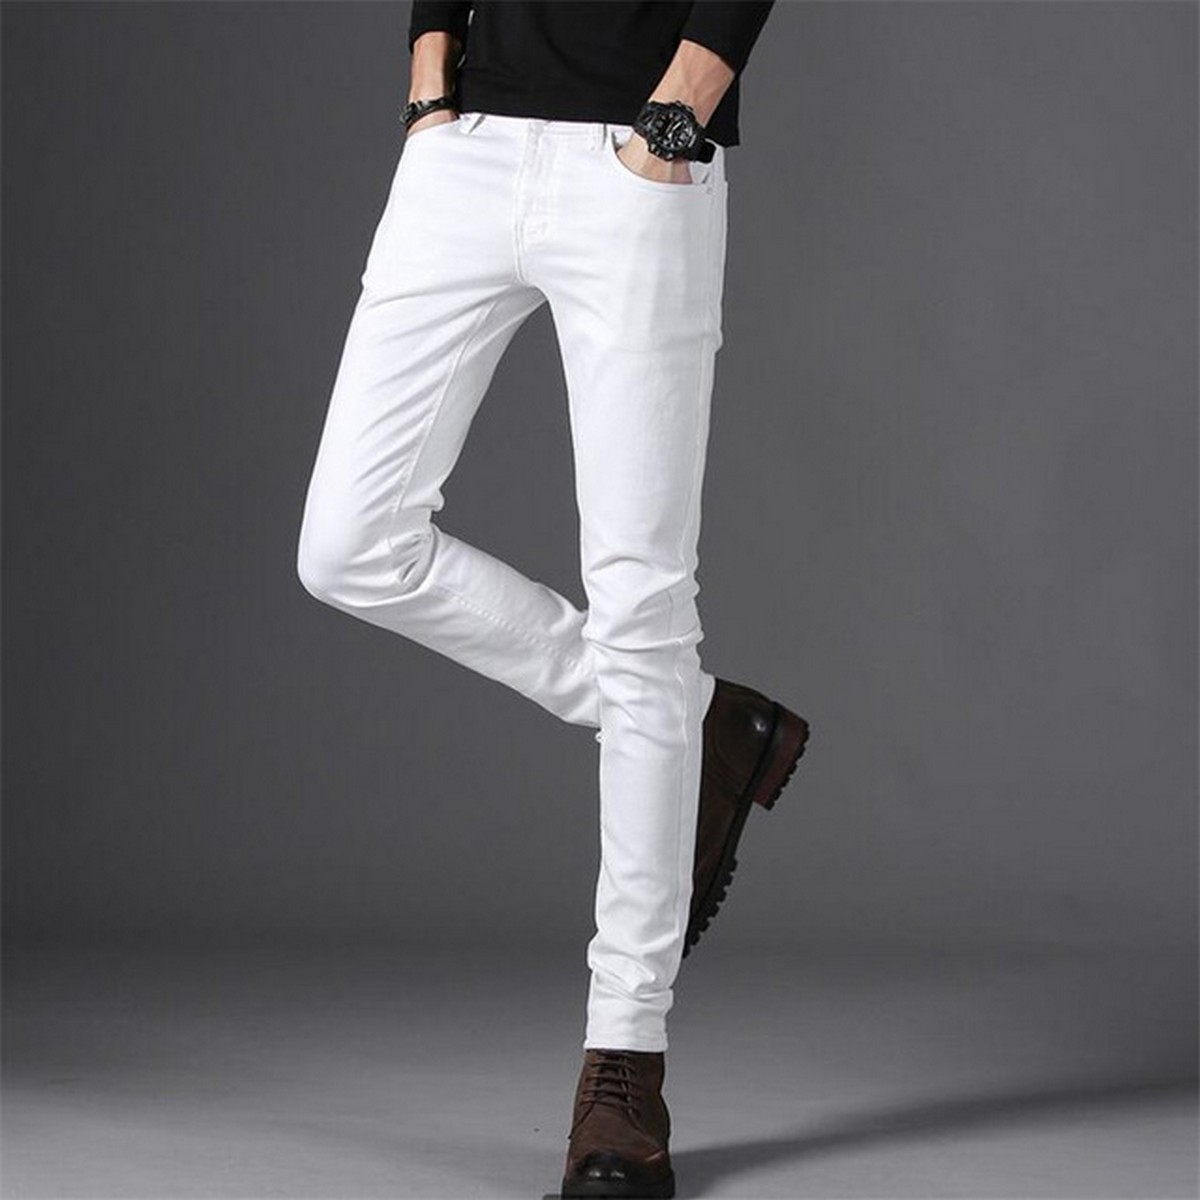 White Color Cotton Jeans Pants for Boys and Adults